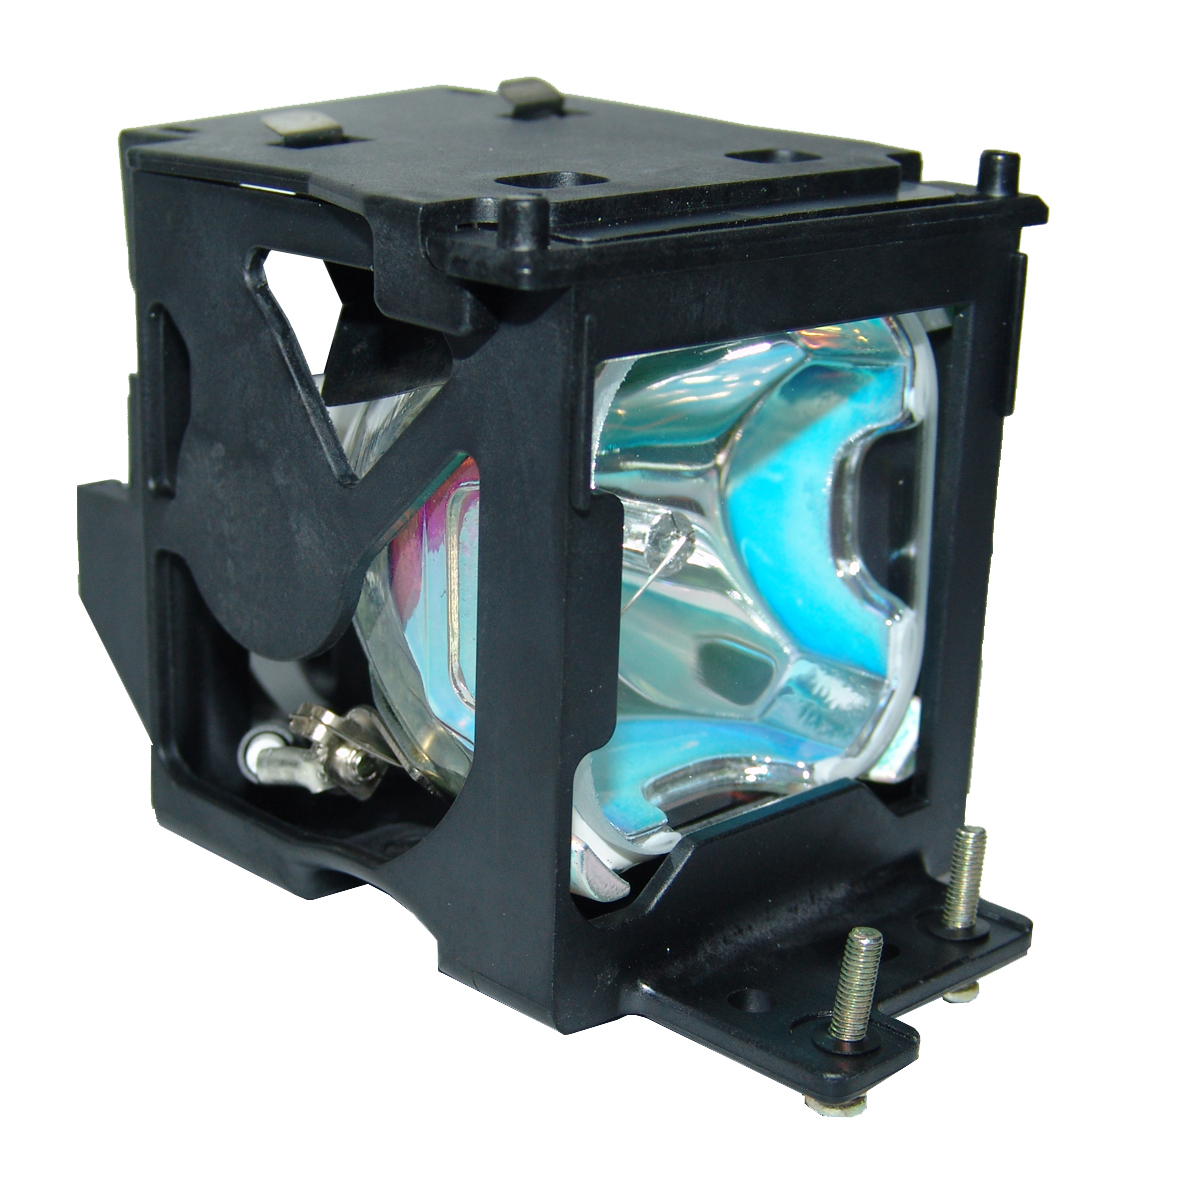 Lutema Economy Bulb for Panasonic PT-L500U Projector (Lamp with Housing) - image 4 of 5